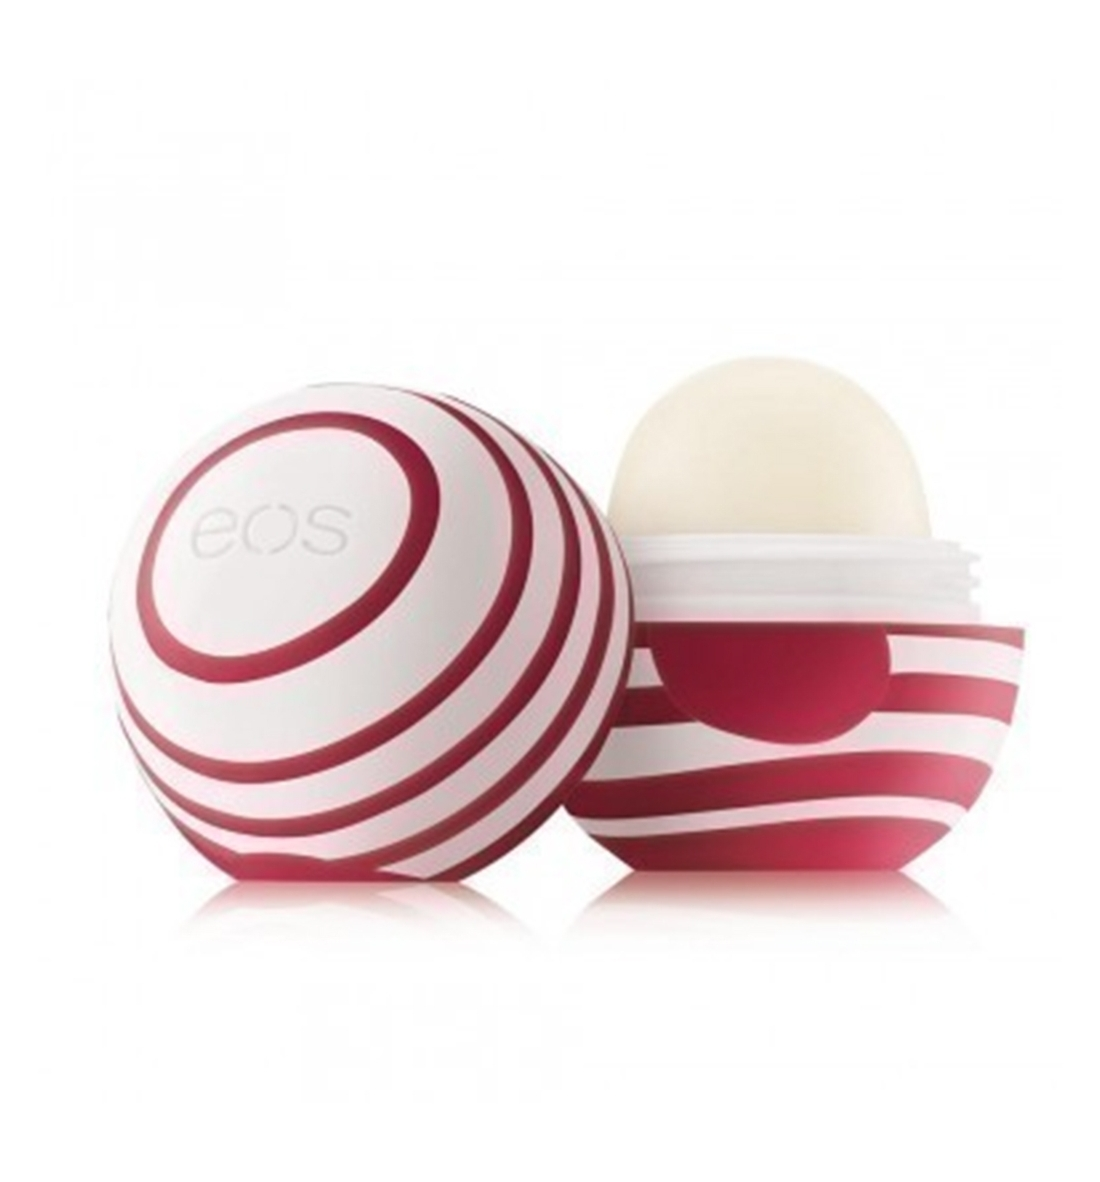 PEPPERMINT CREAM EOS LIP BALM